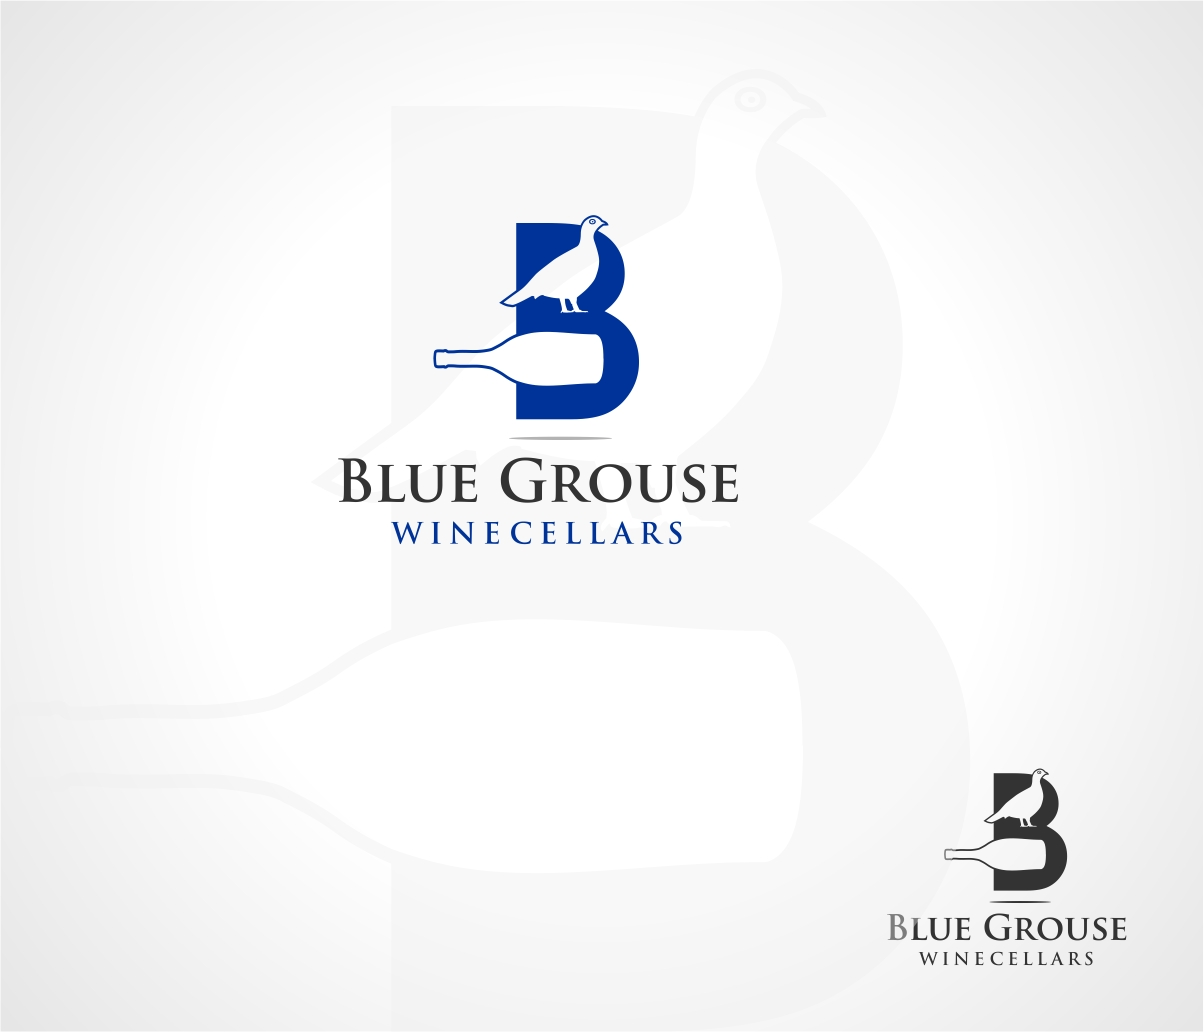 Logo Design by haidu - Entry No. 255 in the Logo Design Contest Creative Logo Design for Blue Grouse Wine Cellars.